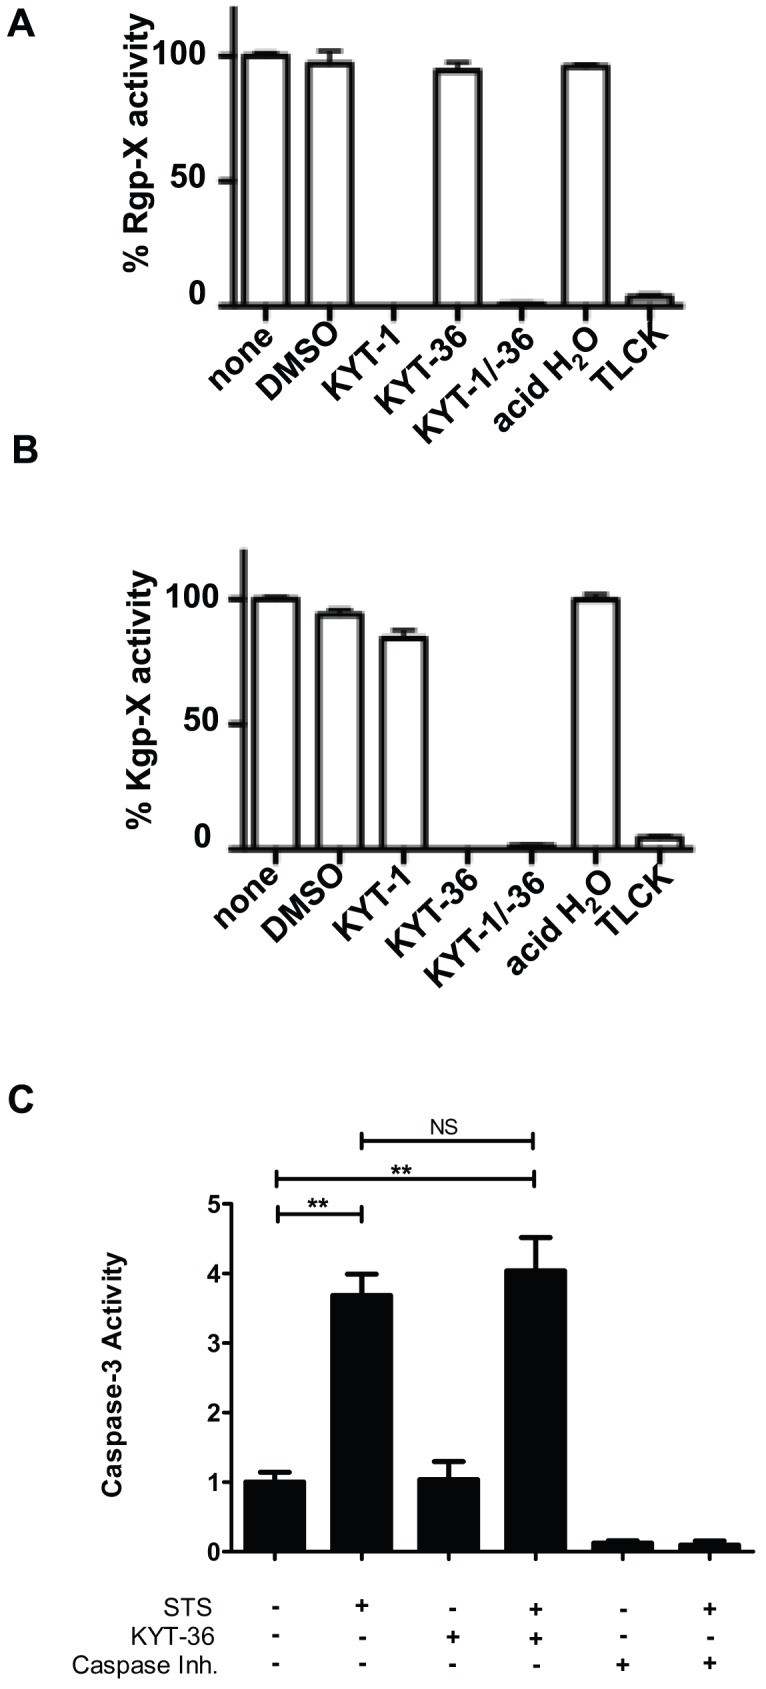 KYT inhibitors specifically inhibit P. gingivalis gingipain activity and do not alter host 3 caspase activity. Effect of gingipain inhibitors on P. gingivalis A ) Rgp or B ) Kgp protease activity. P. gingivalis was untreated (none) or pretreated with 10 µM Rgp-specific inhibitor KYT-1, 10 µM Kgp-specific inhibitor KYT-36, 10 µM KYT-1 and 10 µM KYT-36, 1 mM TLCK, or vehicle controls (DMSO or acid water) for 10 min and monitored for arginine-X-specific or lysine-X-specific protease activity. Effect of inhibitors on P. gingivalis is presented as percent Rgp-X activity or Kgp-X activity relative to untreated P. gingivalis . C ) HUVEC were untreated or treated with 2 µM staurosporine (STS) for 5 h. Whole cell lysates were analyzed for caspase-3 activity in the presence of KYT-36 gingipain inhibitor (3 µM). Activity is represented as fold change relative to untreated. A reversible caspase inhibitor was included to demonstrate observed fluorescence is specific to caspase-3 like proteases. Statistical analysis was performed using unpaired T-test (α = 0.05), **p